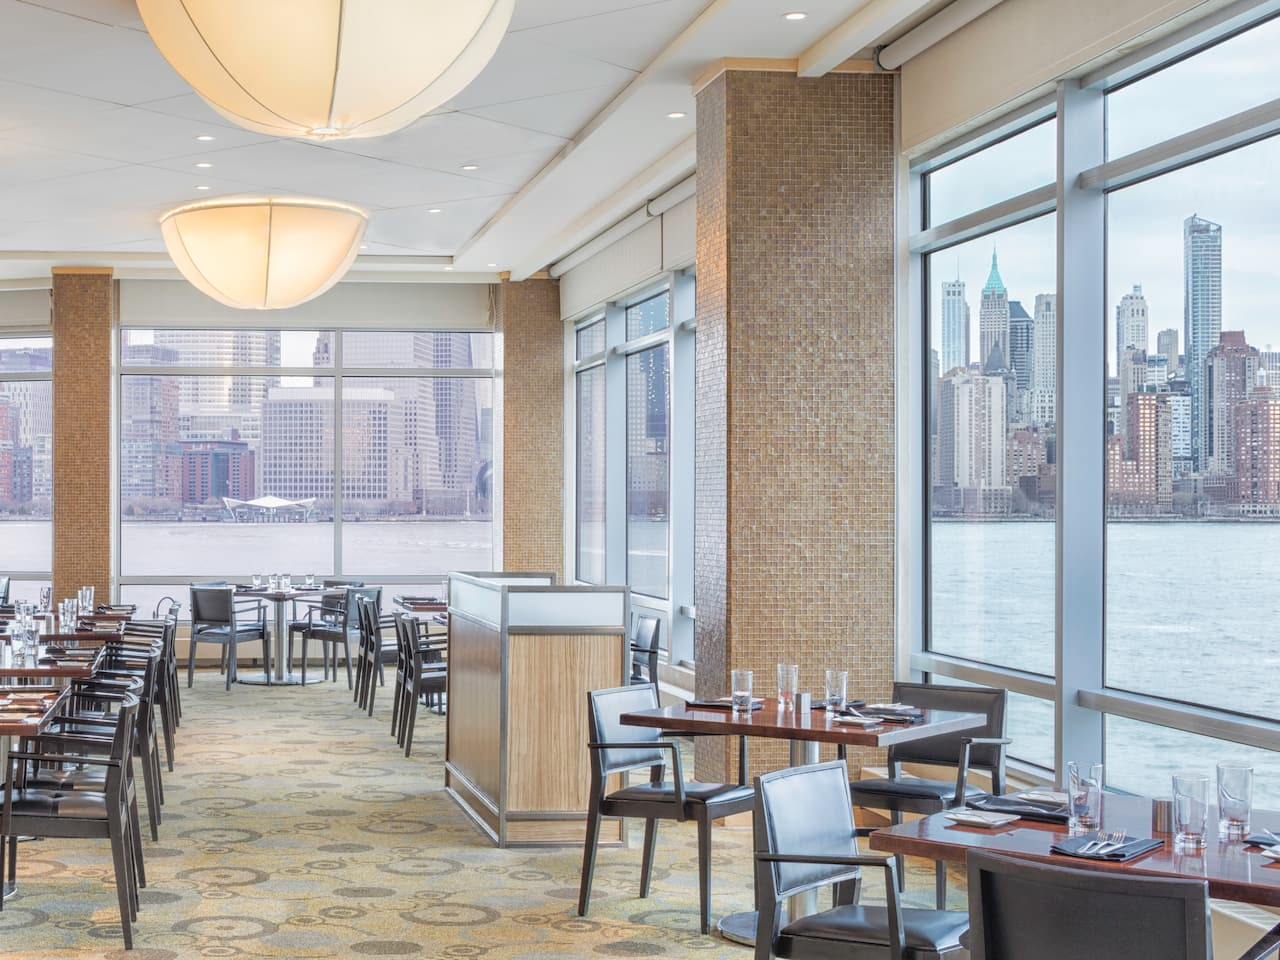 Vu Restaurant Seating Hyatt Regency Jersey City on the Hudson